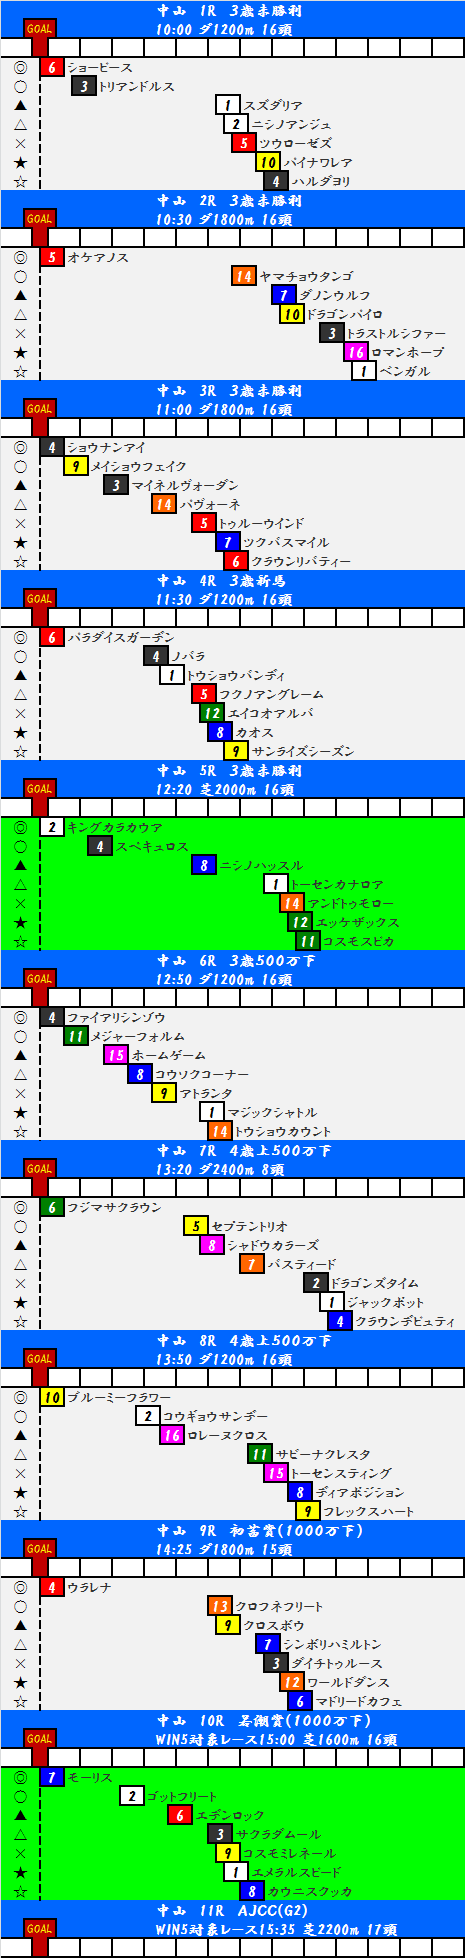 2015012501.png